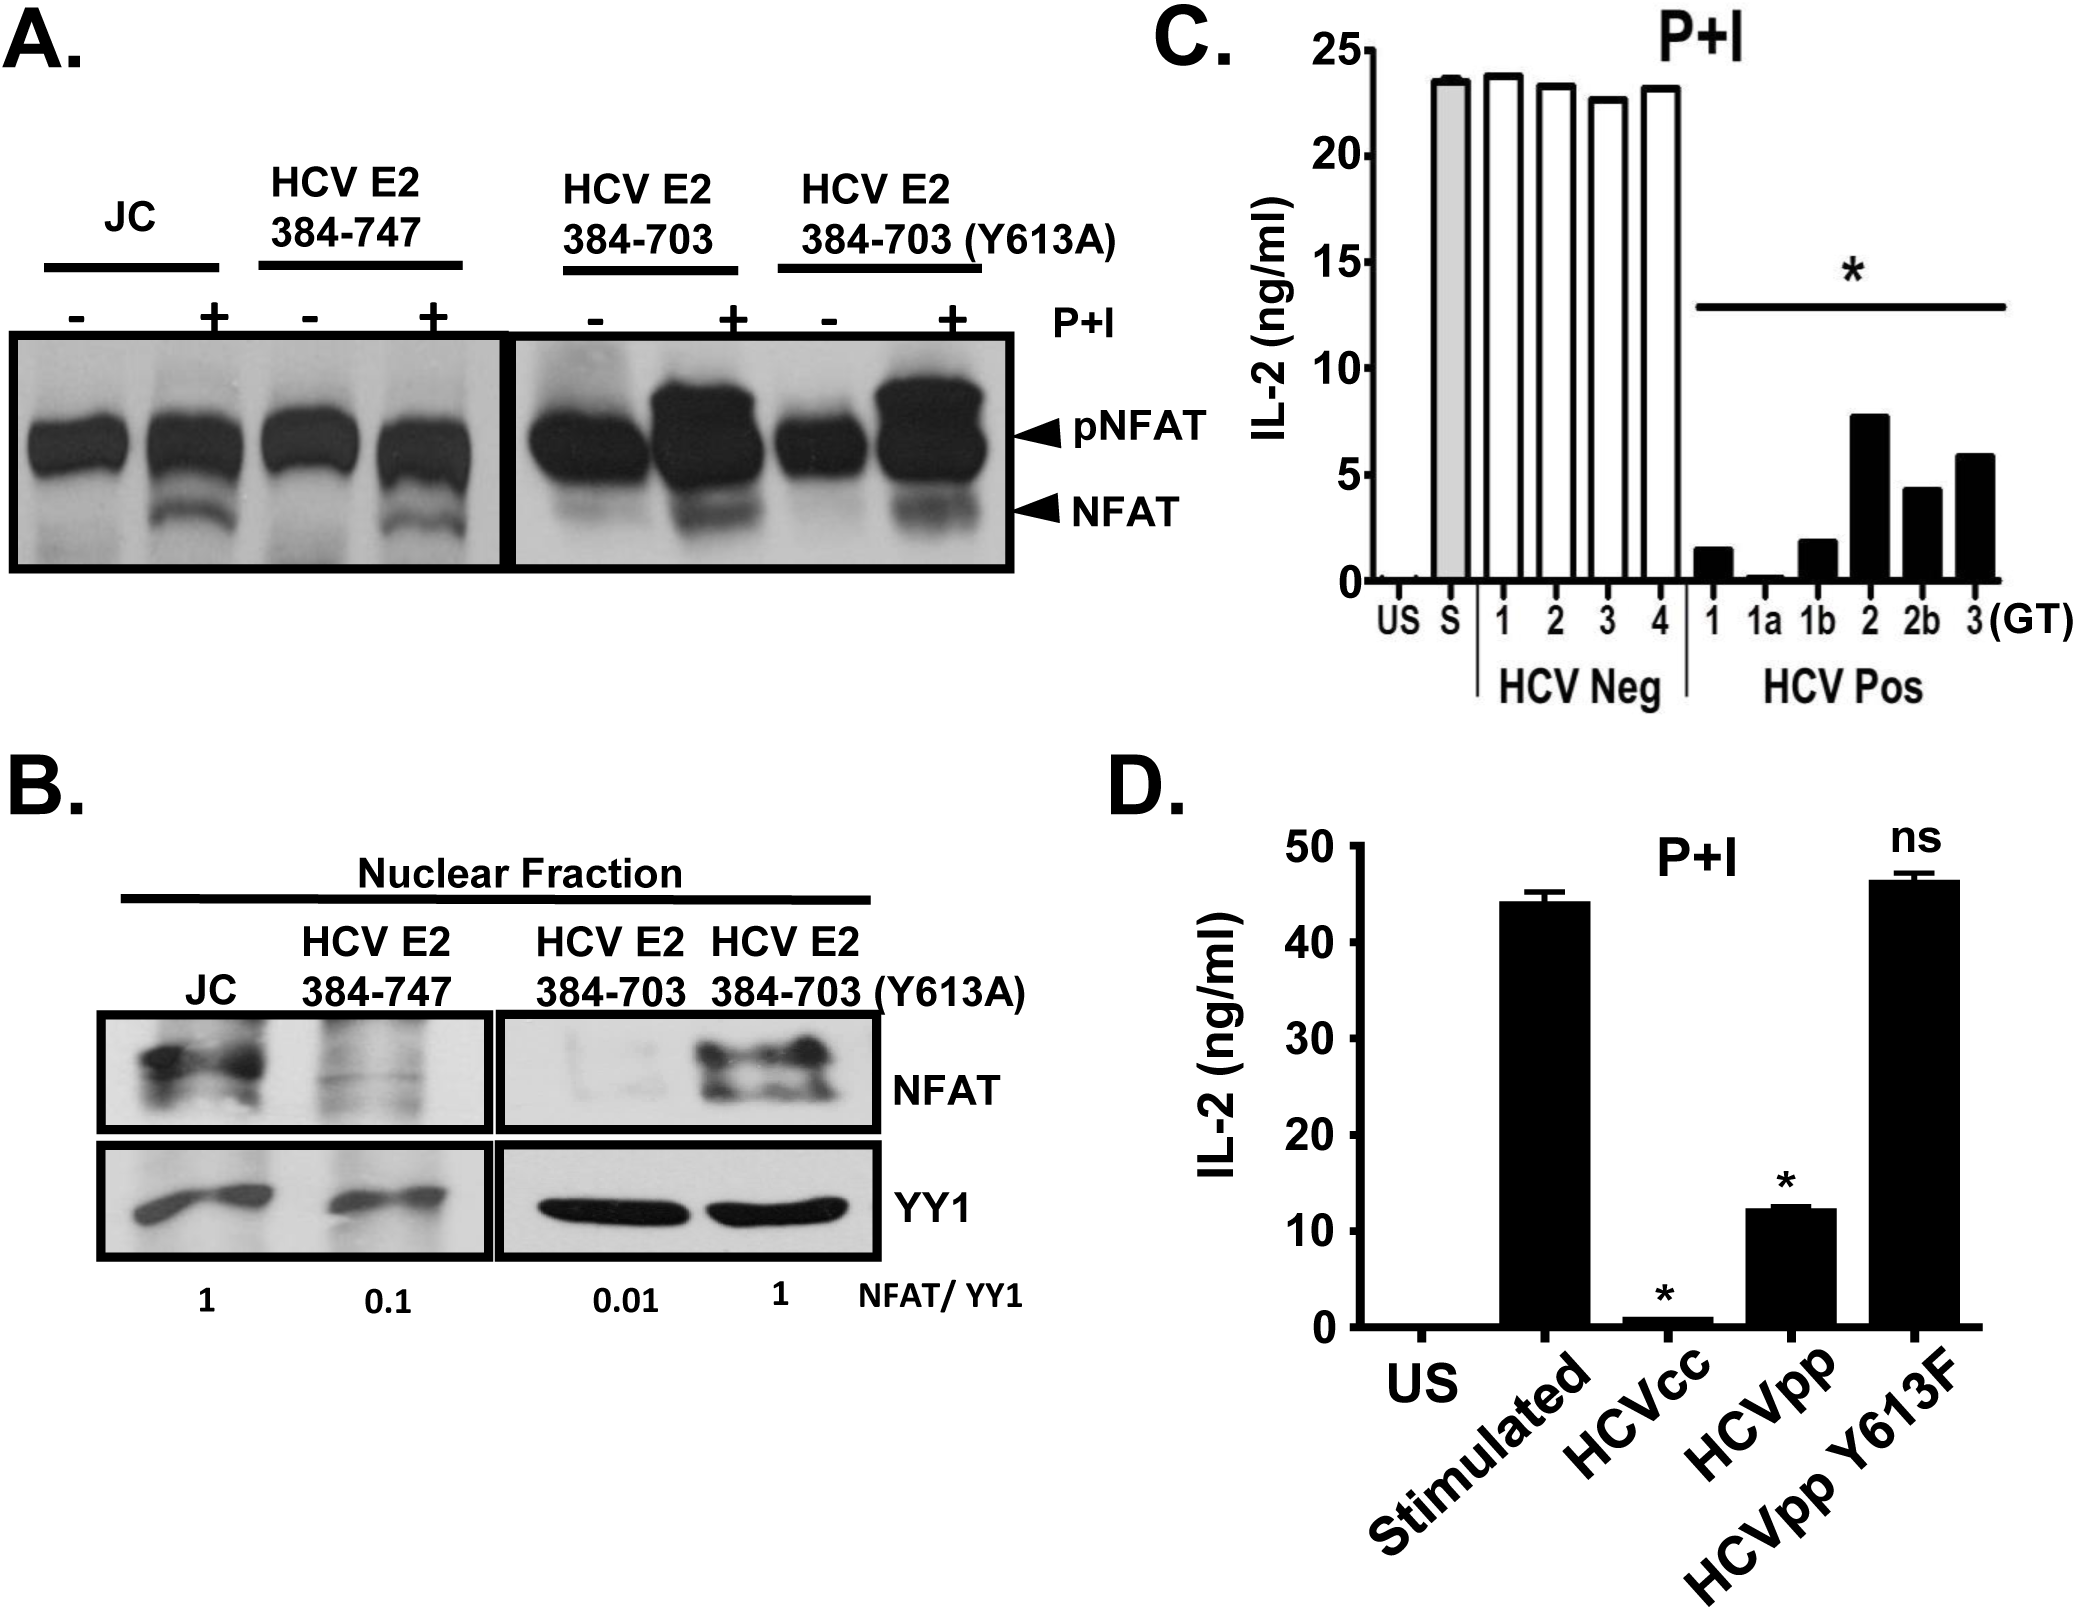 HCV E2 protein inhibits NFAT nuclear translocation.